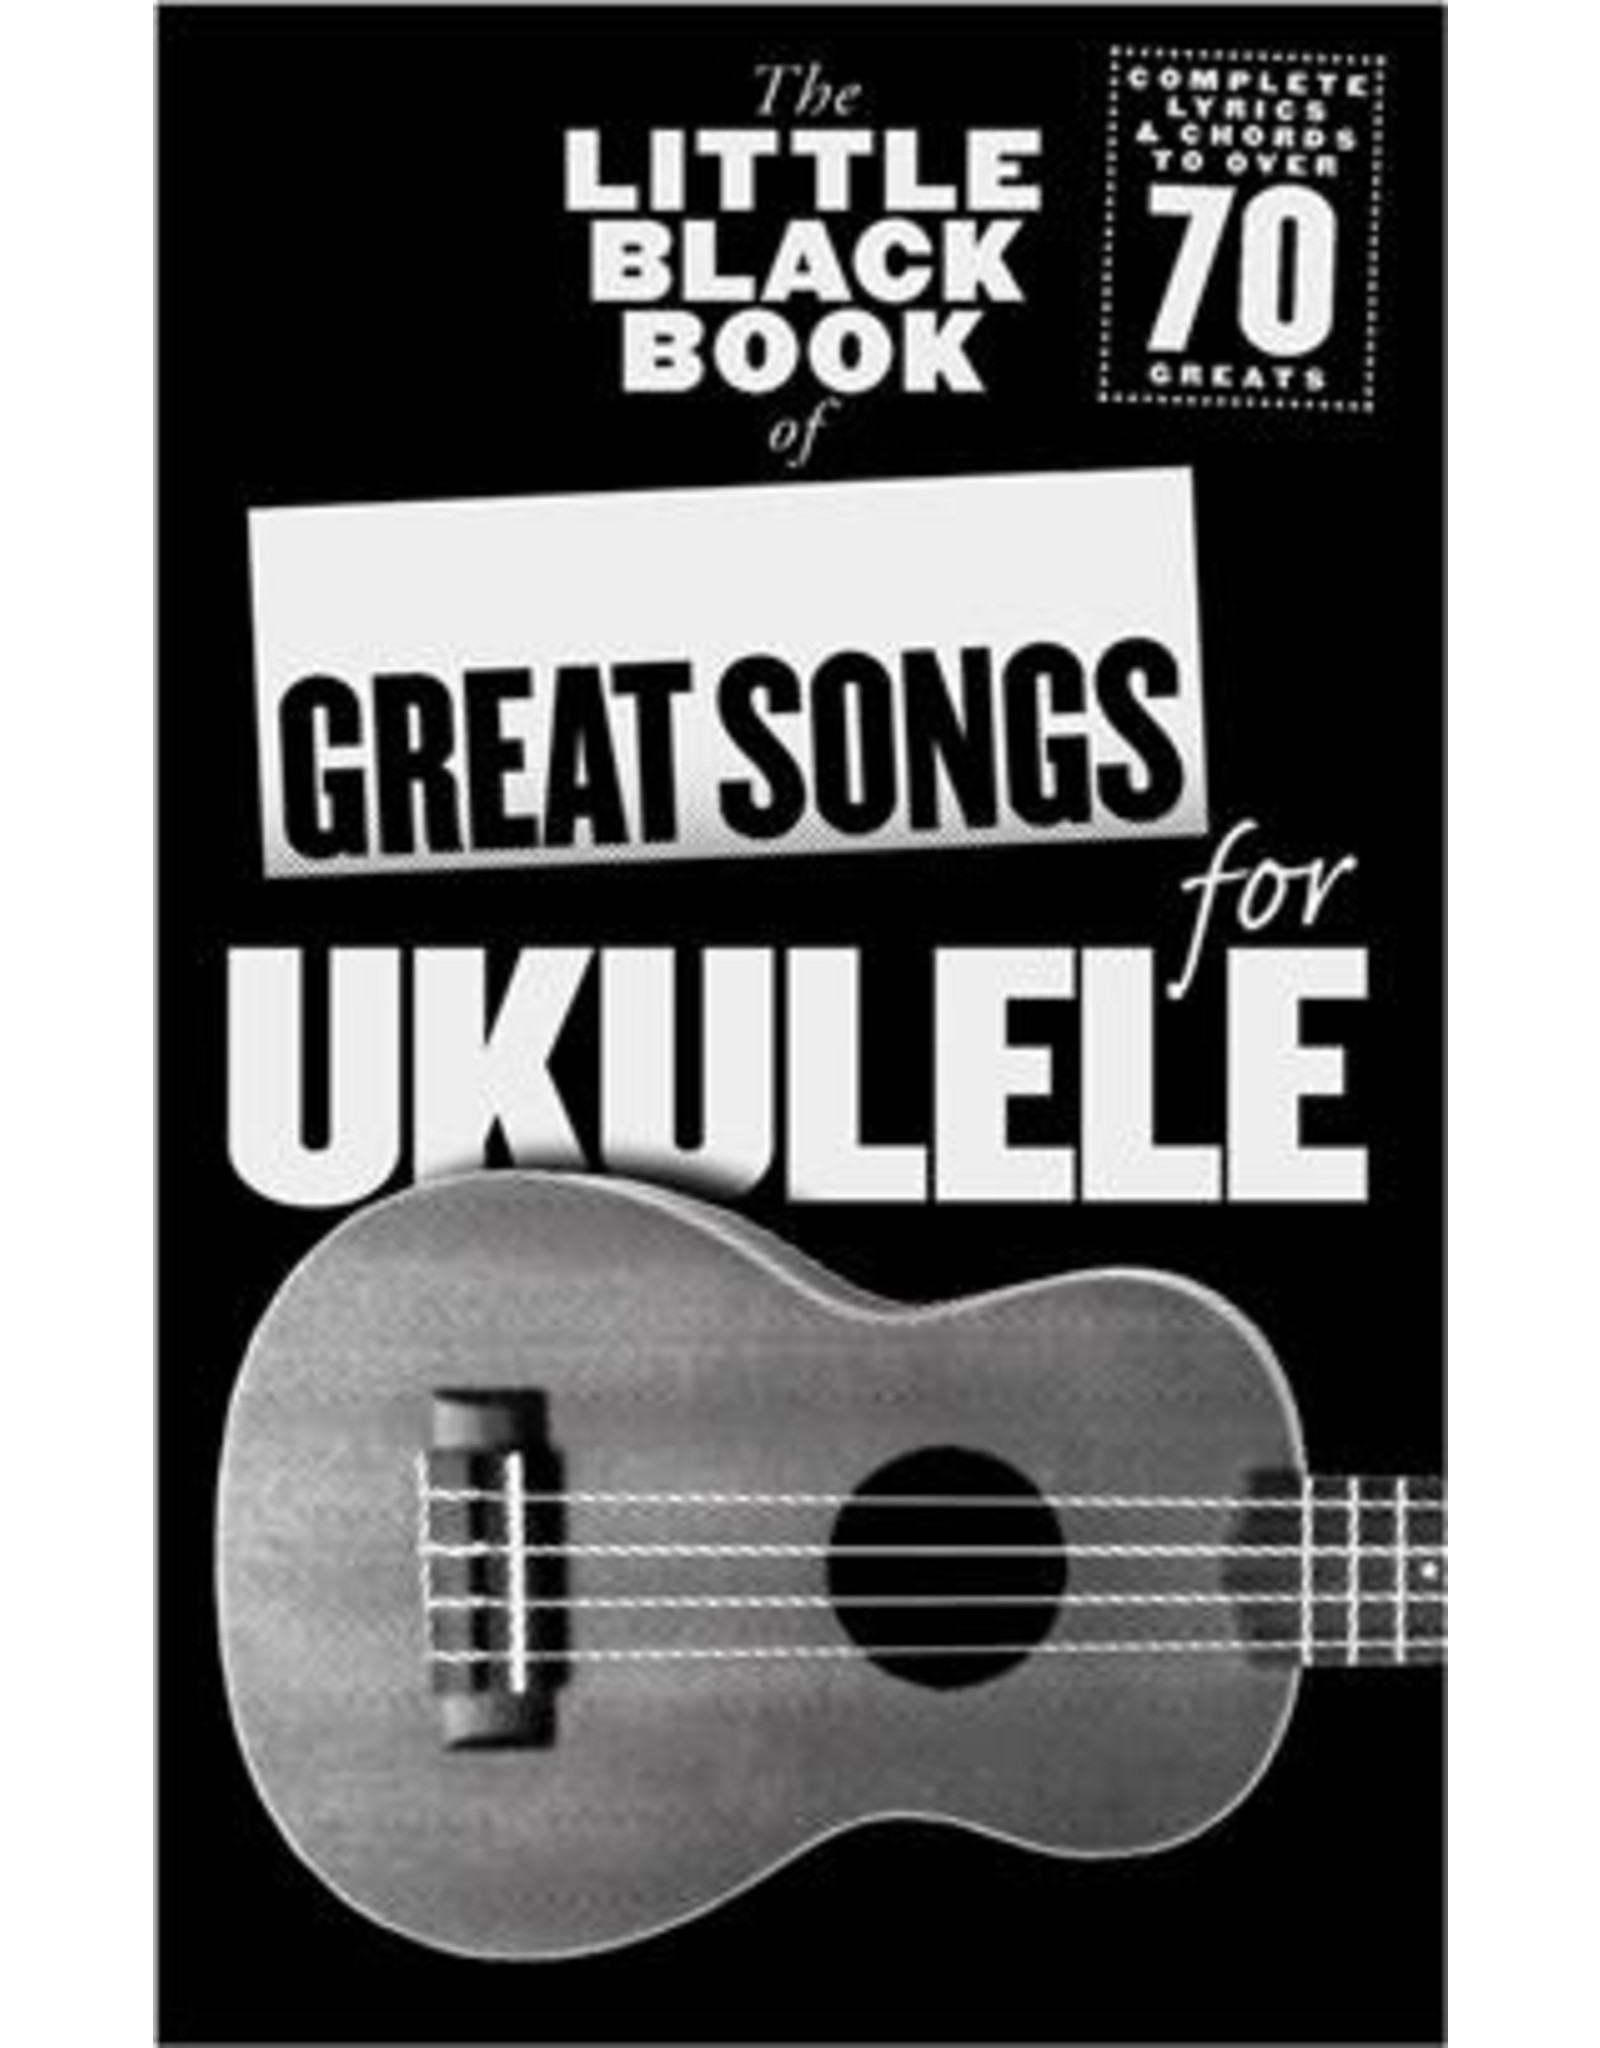 The Little Black Songbook: Great Songs For Ukulele